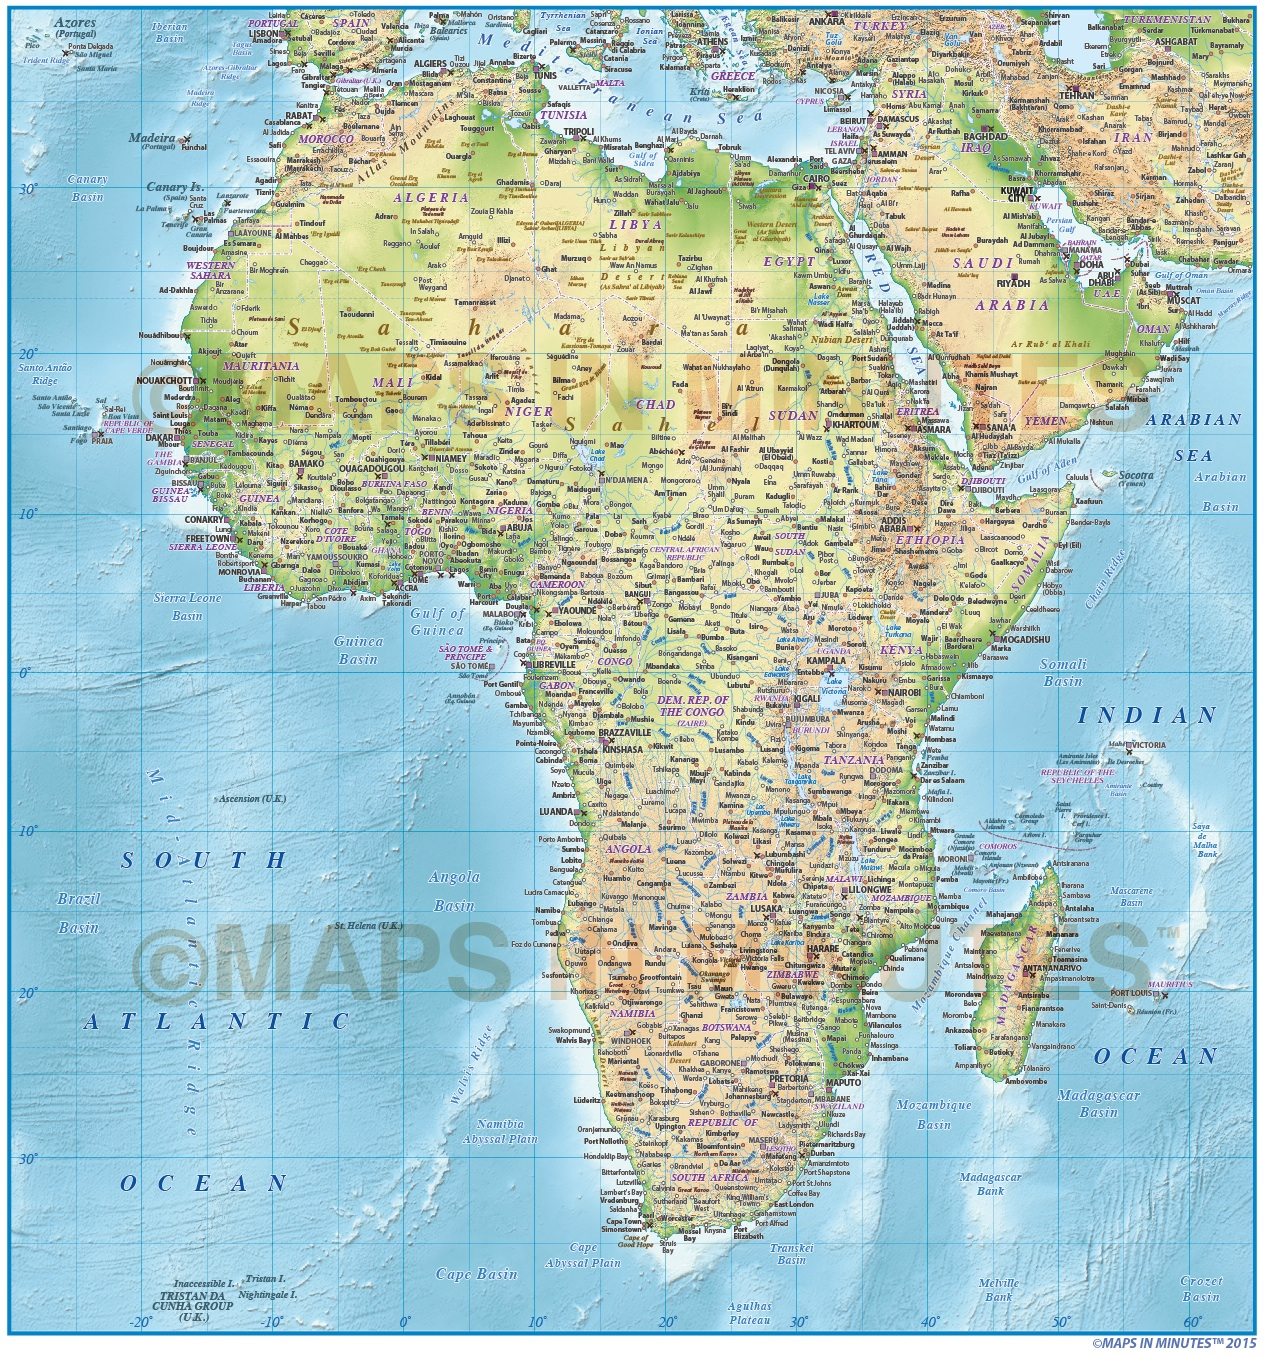 Africa Map Background.Digital Vector Africa Political Map 10 000 000 Scale In Illustrator